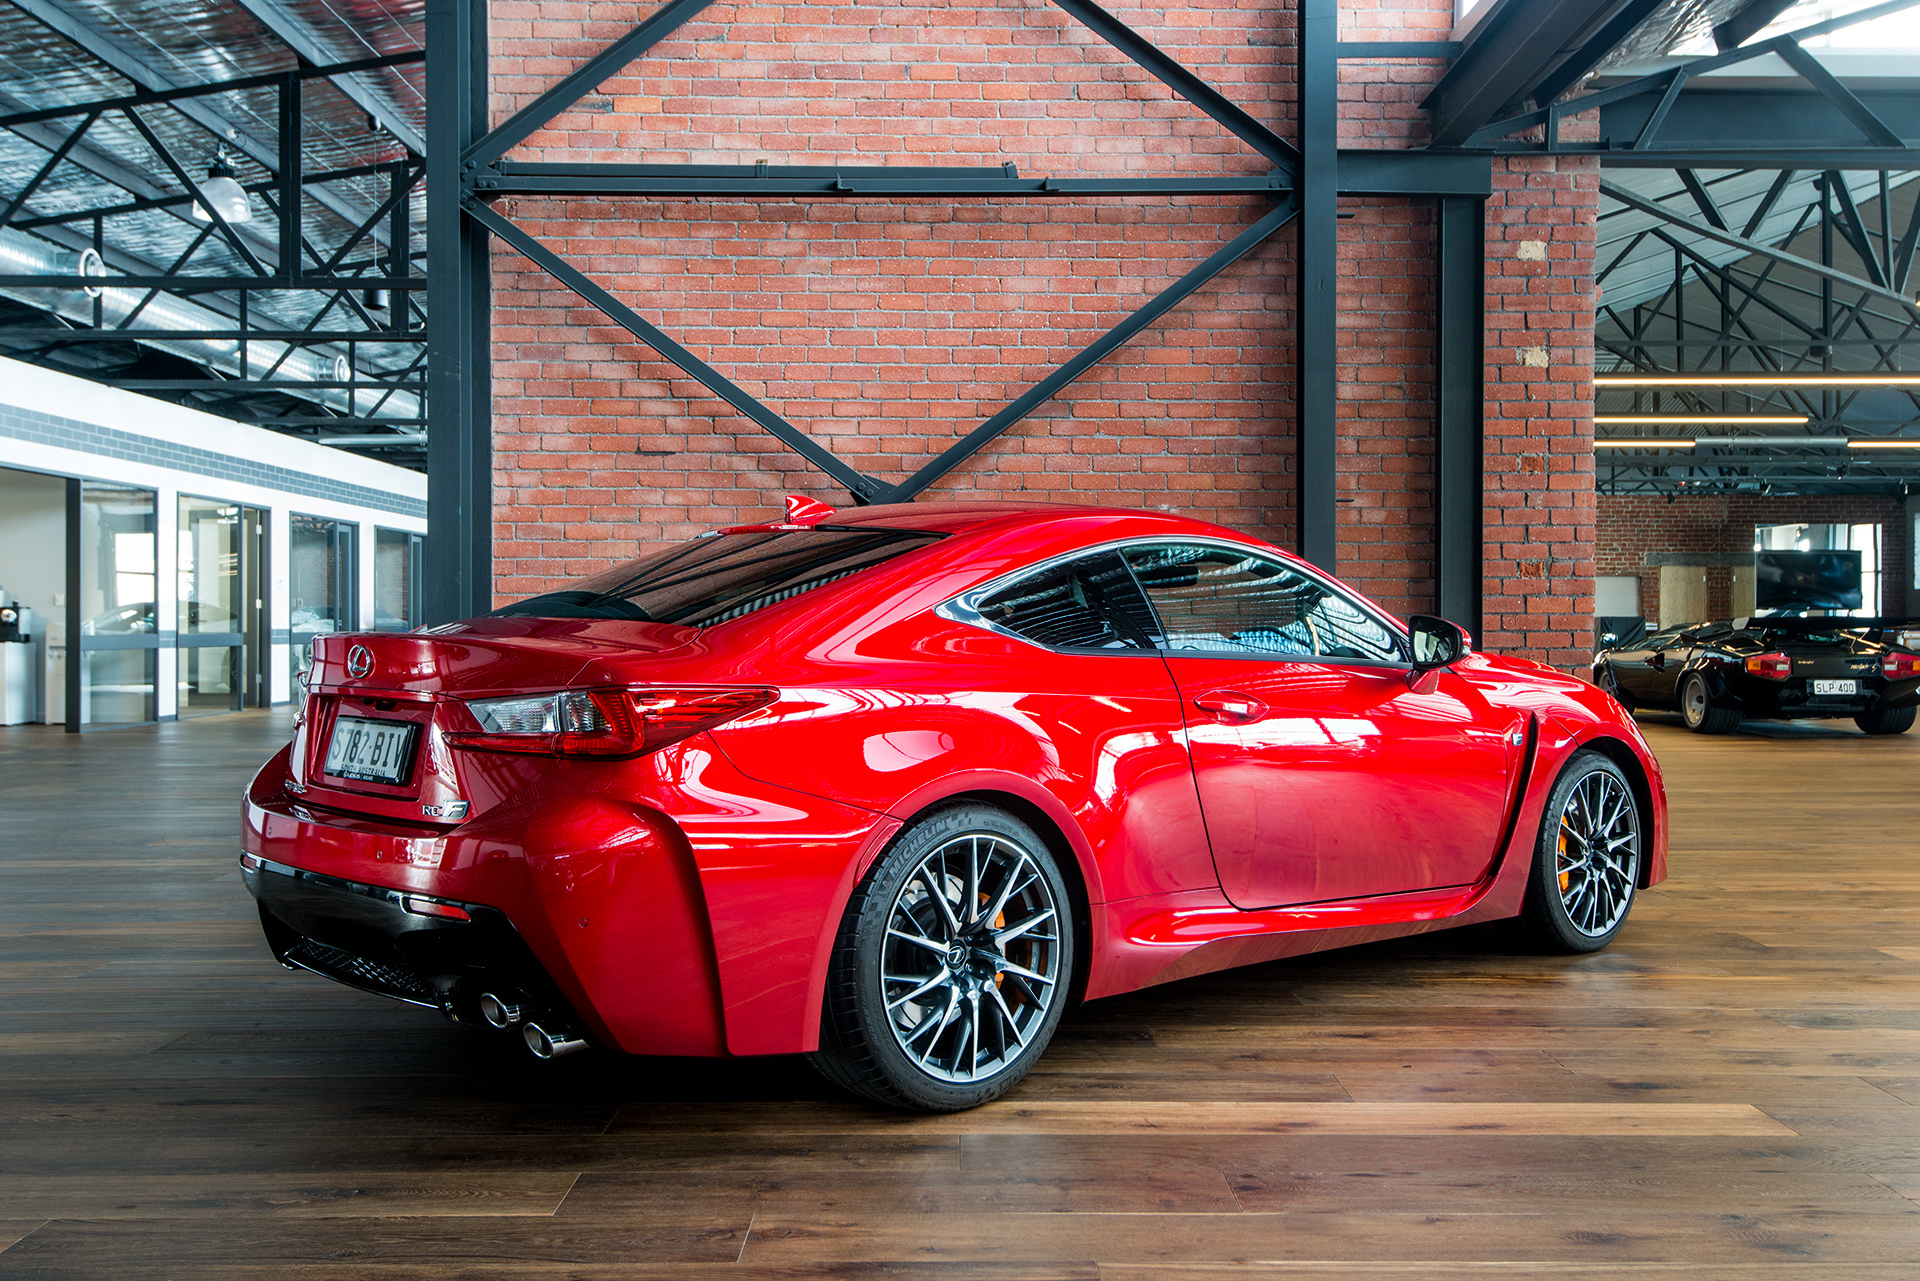 Japanese Cars For Sale >> 2016 Lexus RCF Coupe - Richmonds - Classic and Prestige ...